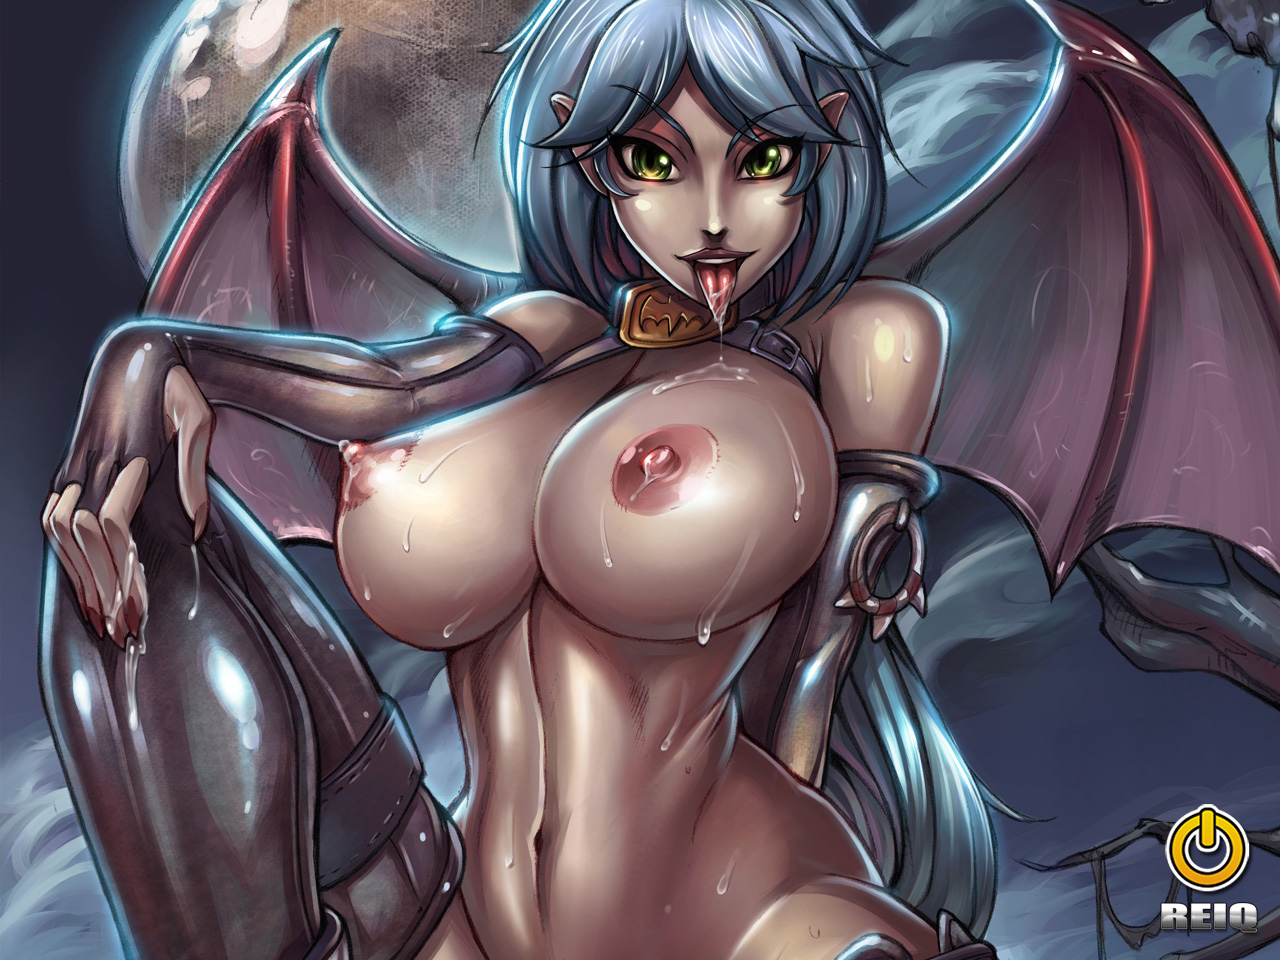 Succubus fuck man to death hentai nudes clips